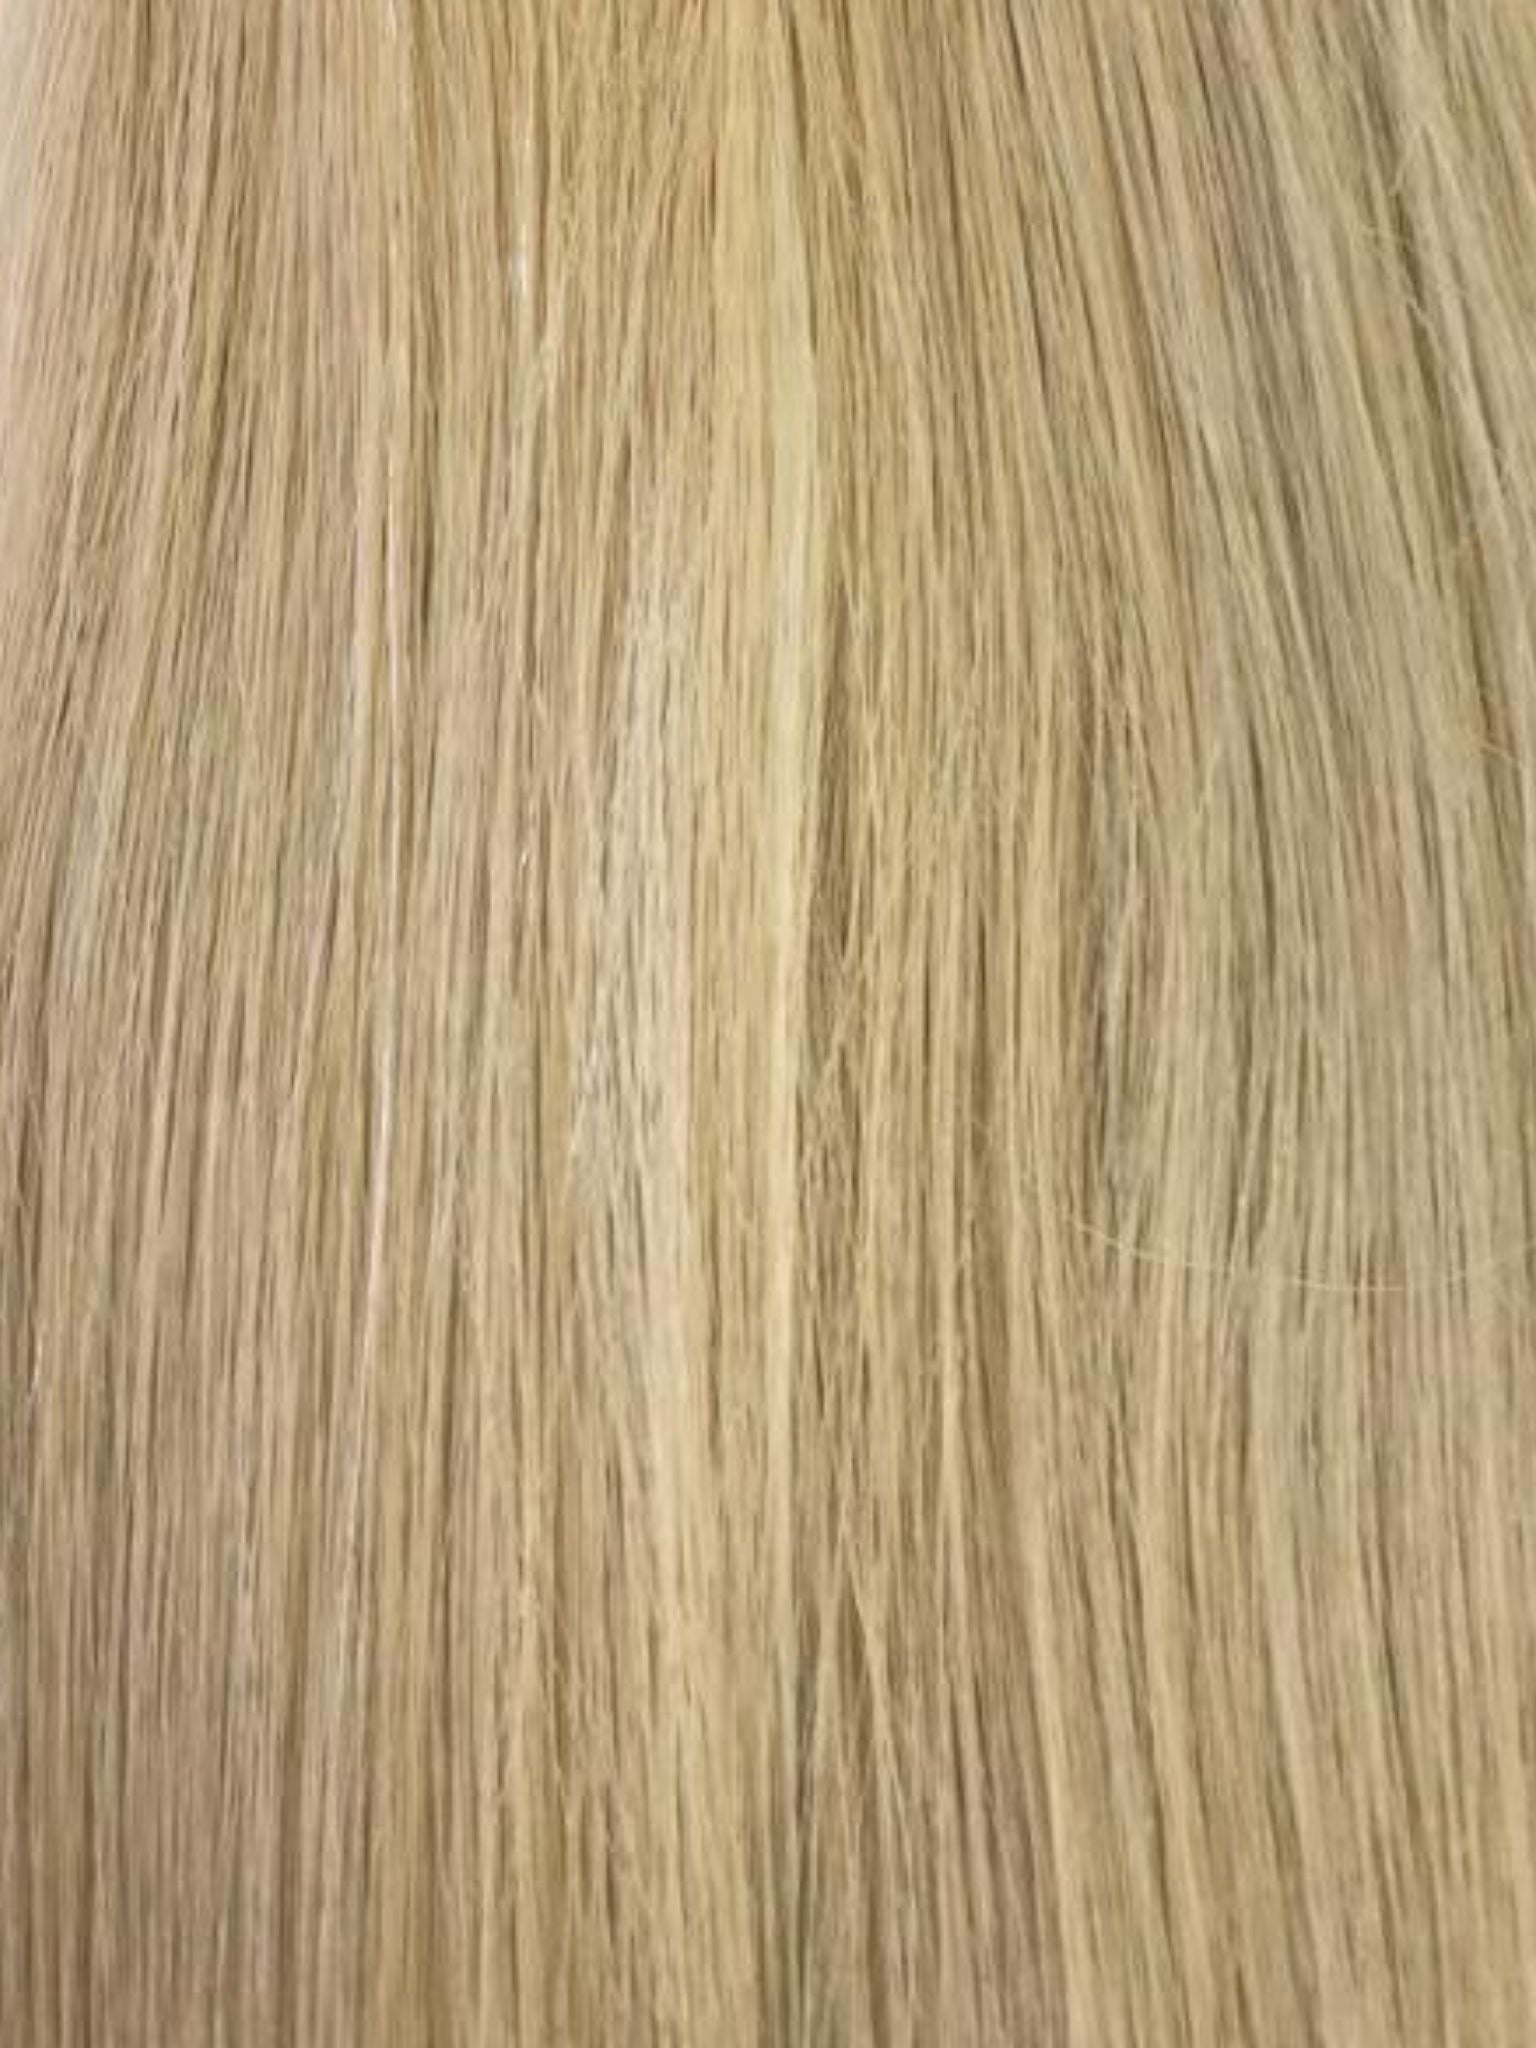 Seamless Tape-In Hair Extensions - Dark Ash Blonde #14